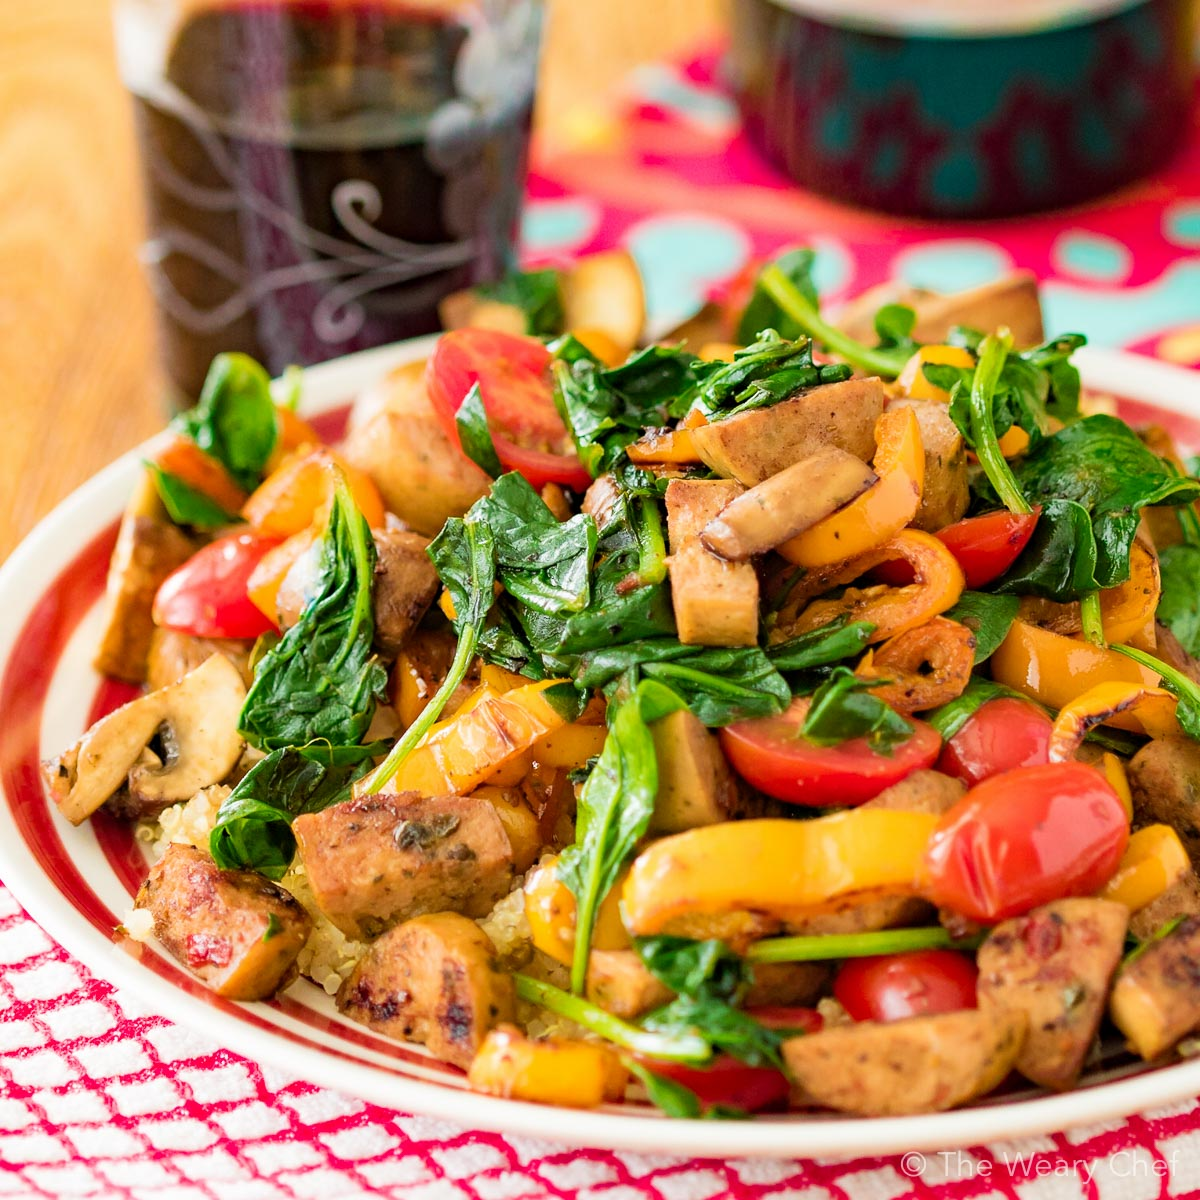 Sausage stir fry is a quick and easy way to get dinner on the table in a hurry!